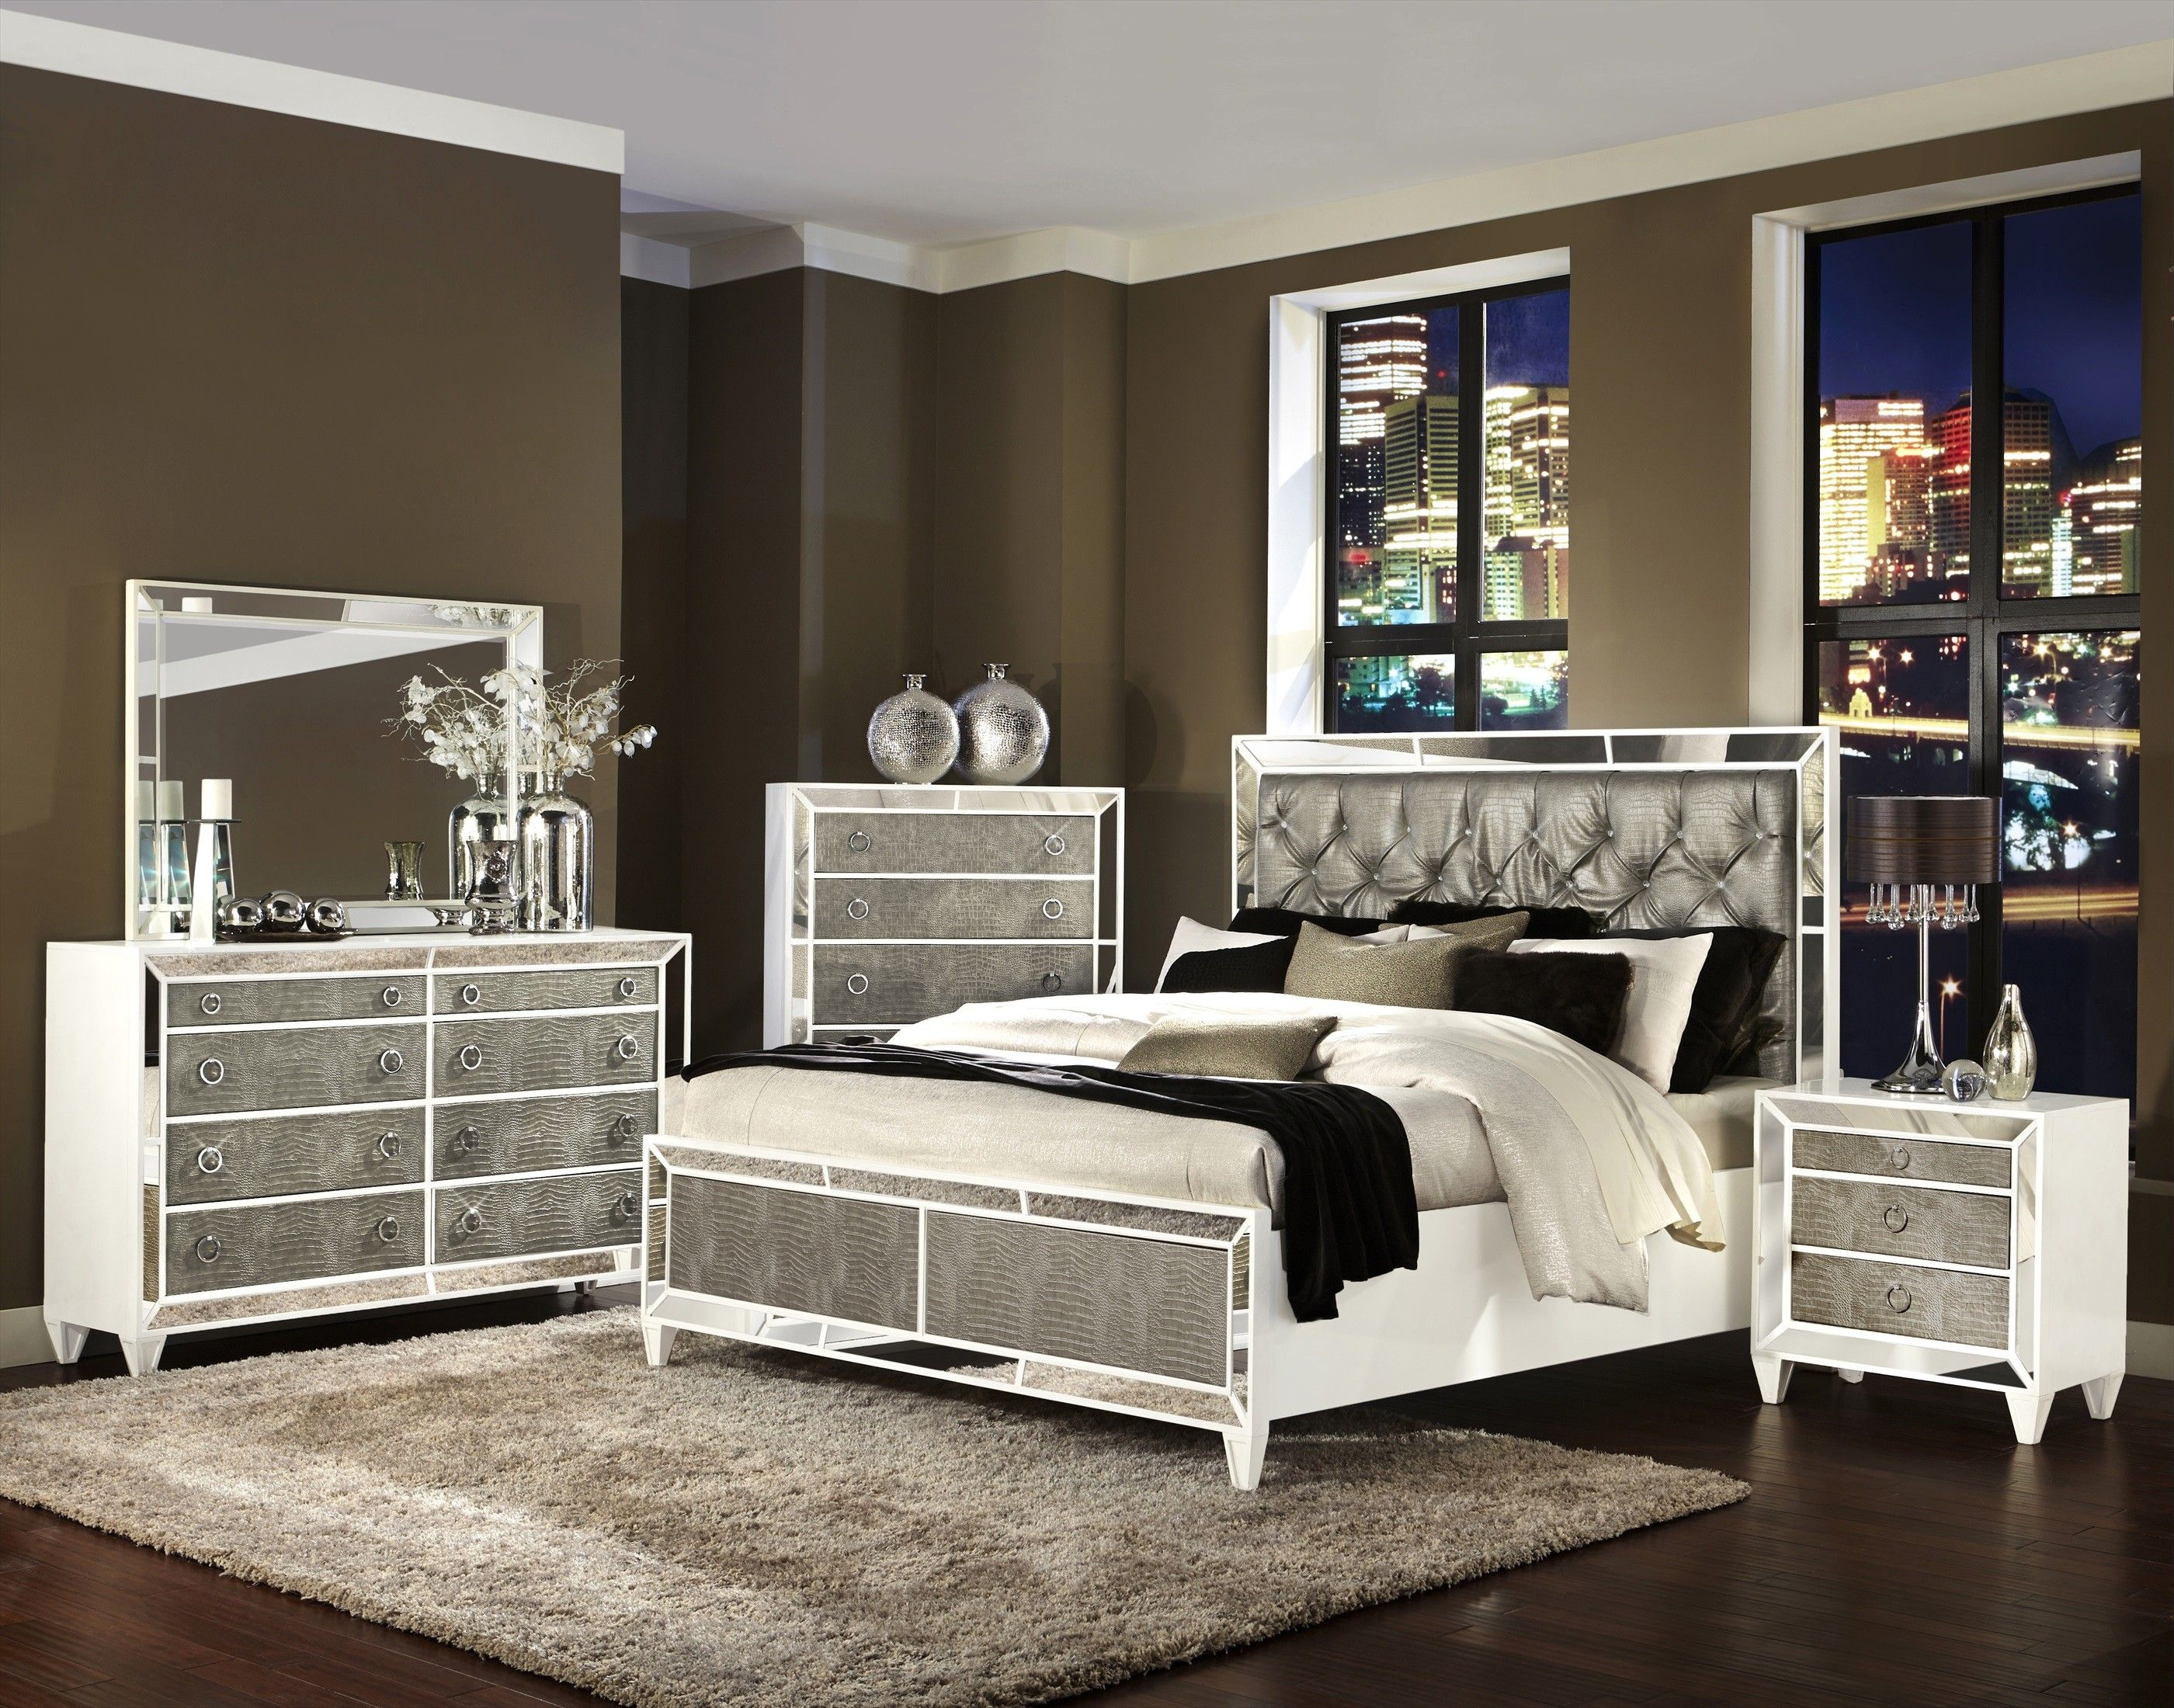 Mirrored Bedroom Furniture Sets Black Master Bedroom Setfurniture ...